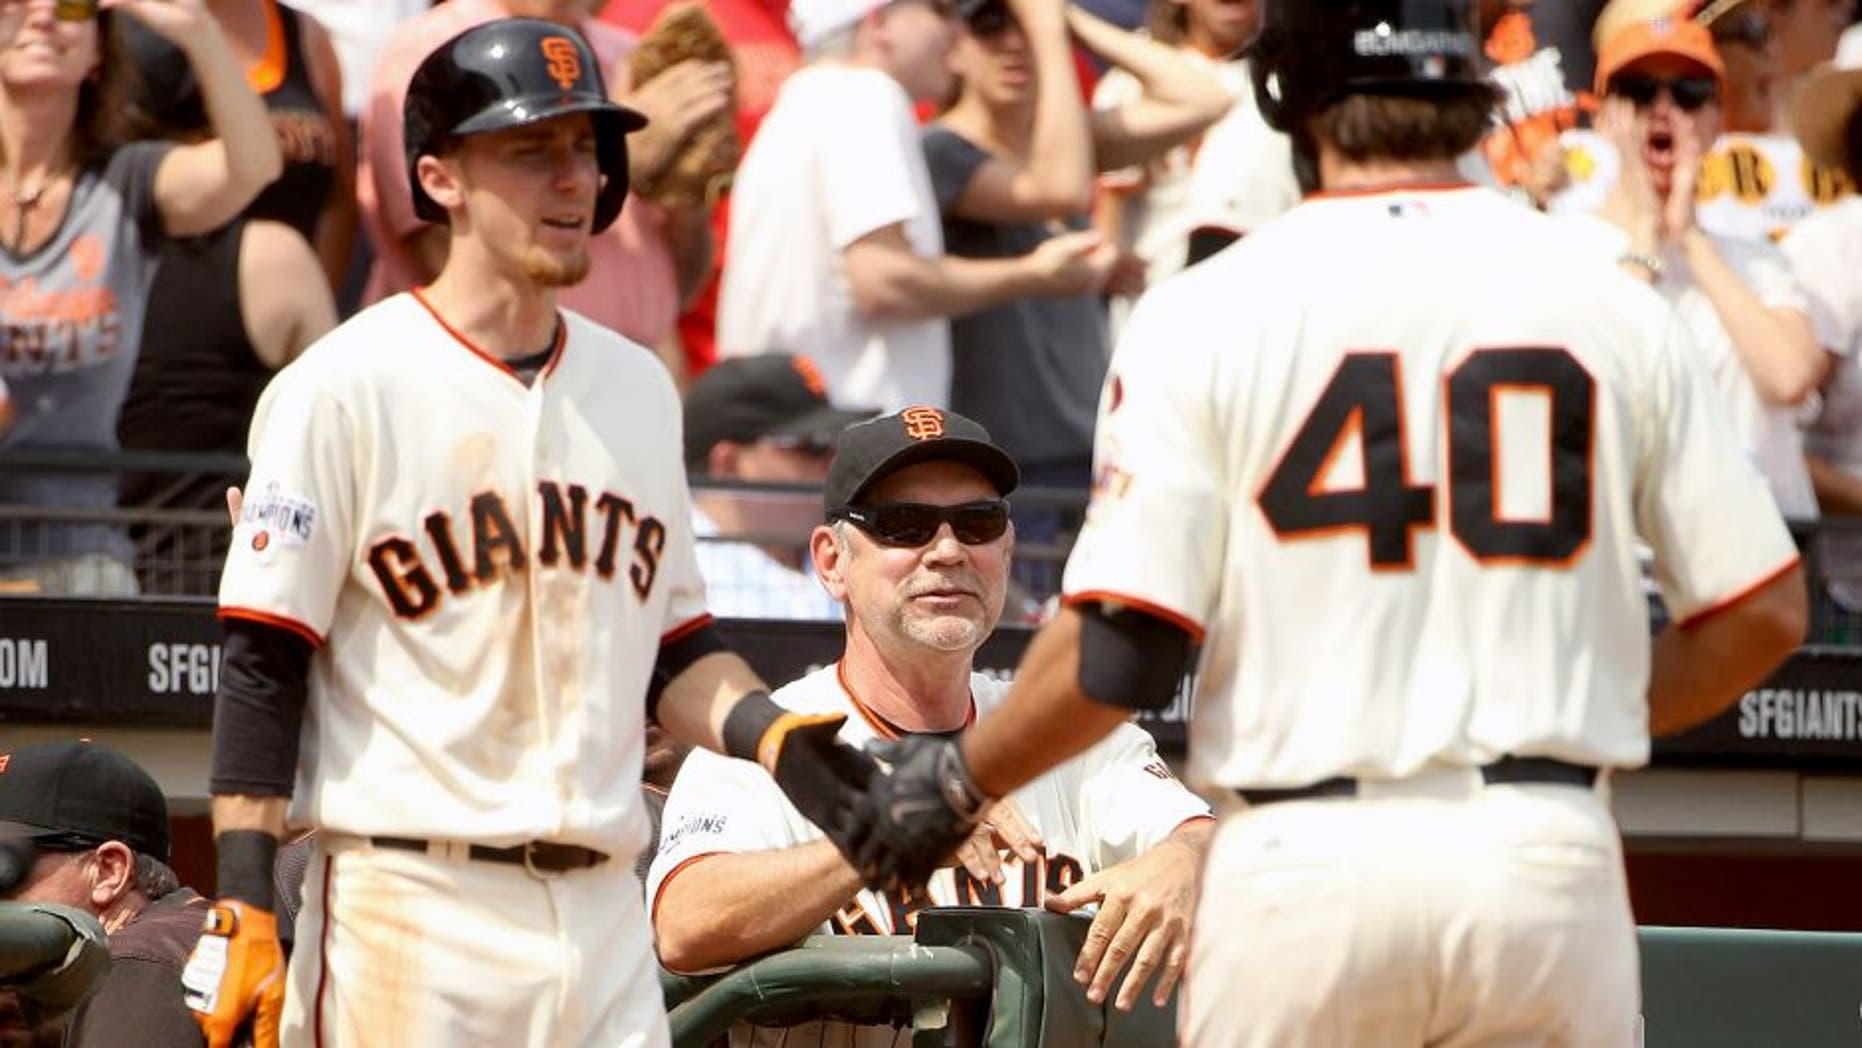 SAN FRANCISCO, CA - AUGUST 16: Manager Bruce Bochy smiles as Matt Duffy #5 congratulates Madison Bumgarner #40 of the San Francisco Giants after Bumgarner hit a home run in the seventh inning against the Washington Nationals at AT&T Park on August 16, 2015 in San Francisco, California. (Photo by Ezra Shaw/Getty Images)